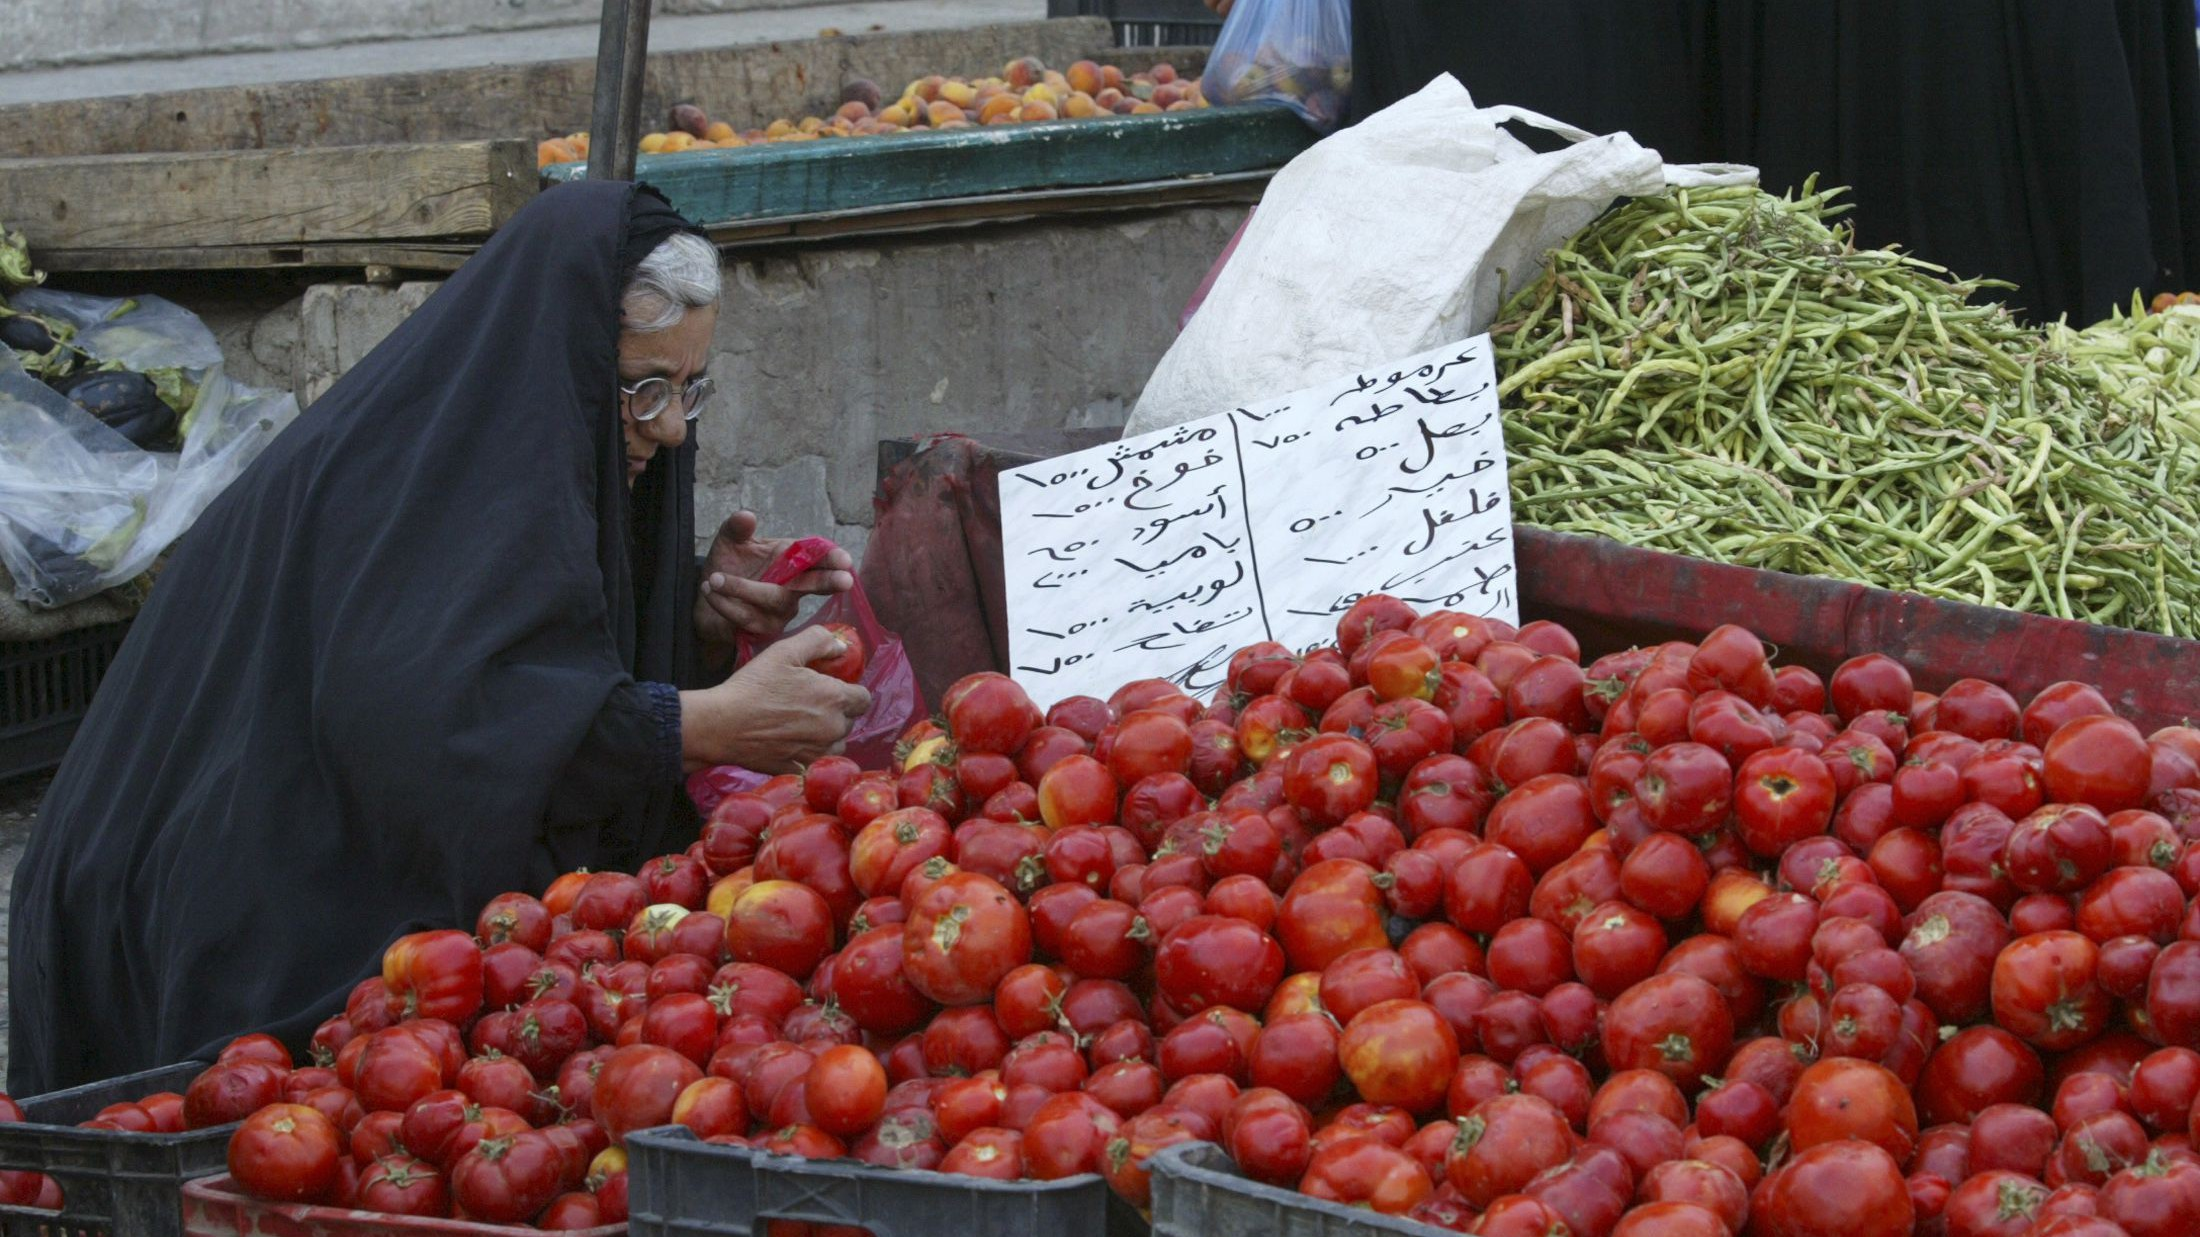 A woman buys vegetables in a market in Baghdad's Karrada district